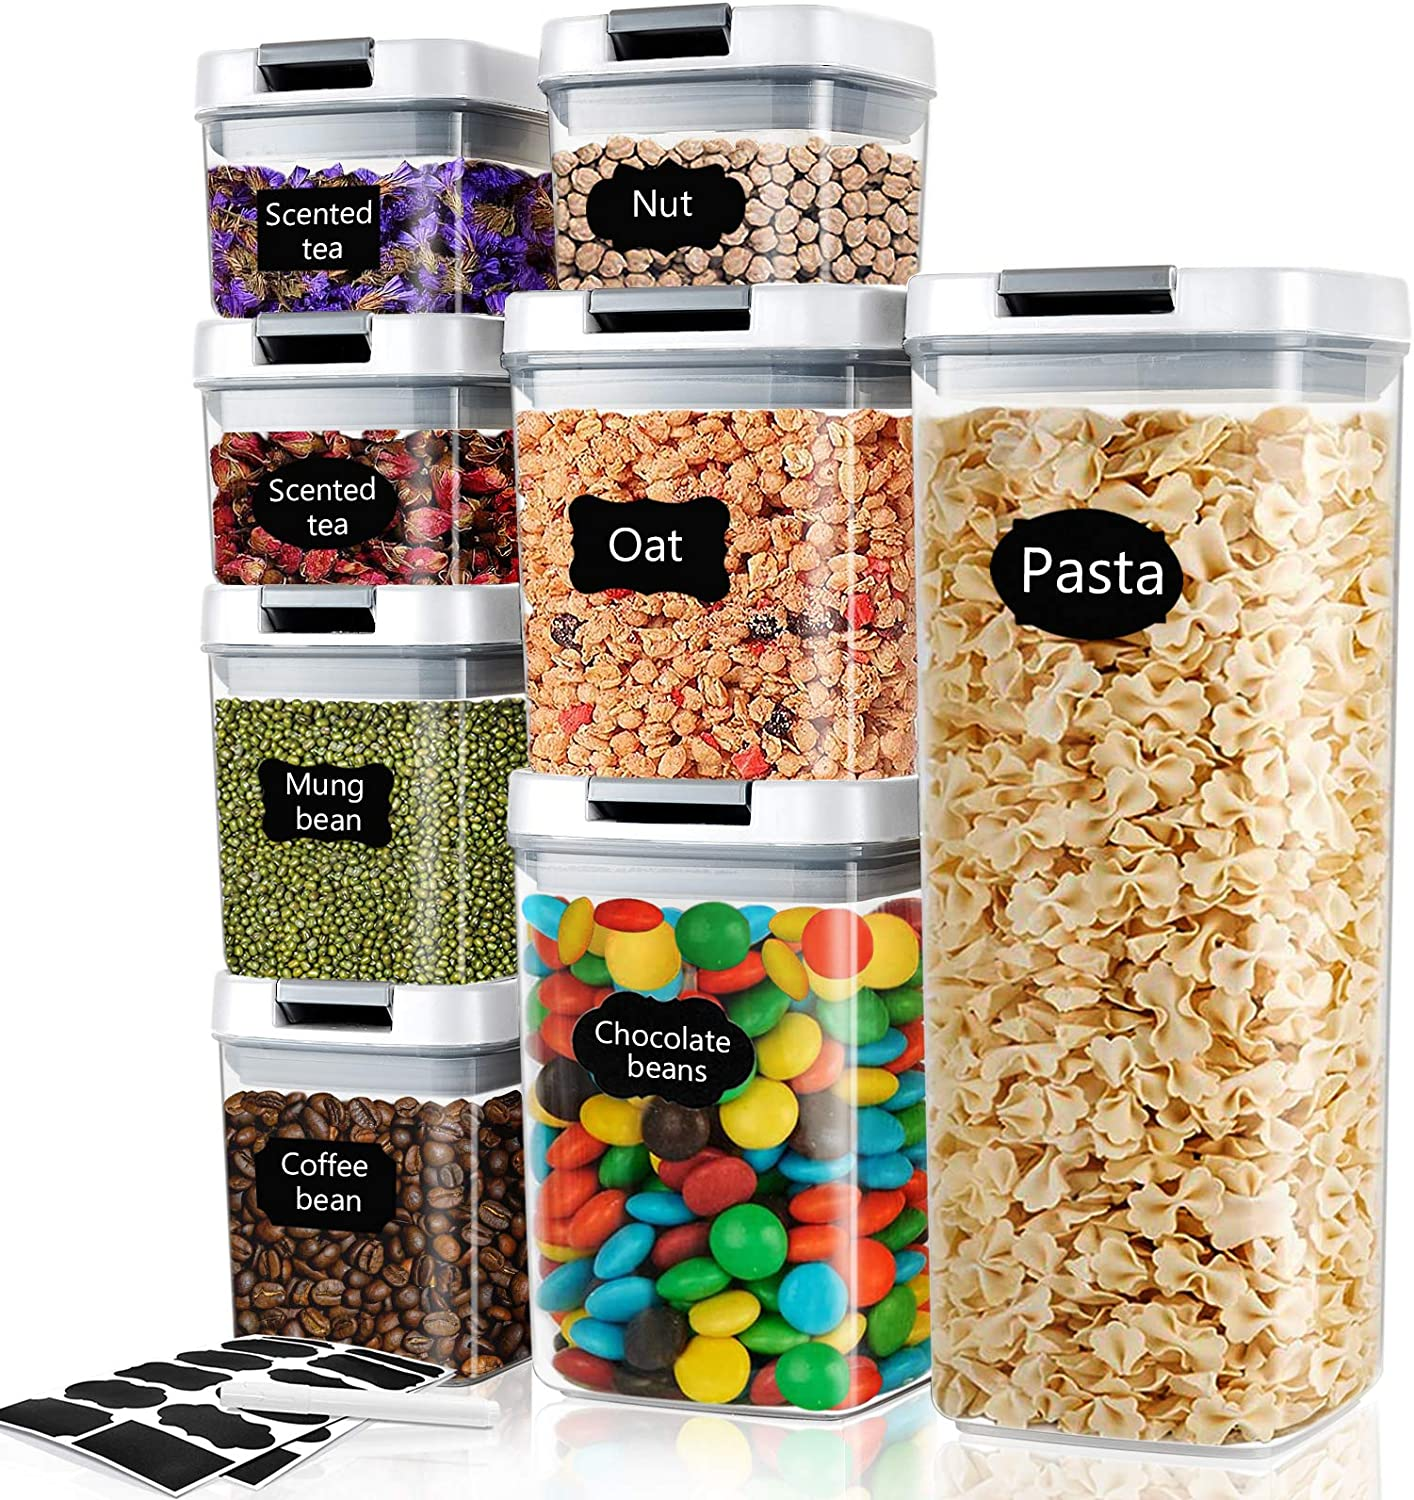 Air Tight Food Storage Containers with Lids Set of 8: Leakproof Air-tight Locks BPA Free Dry Food Container Kitchen Pantry Cabinet Food Storage Container Sets with Labels, Marker